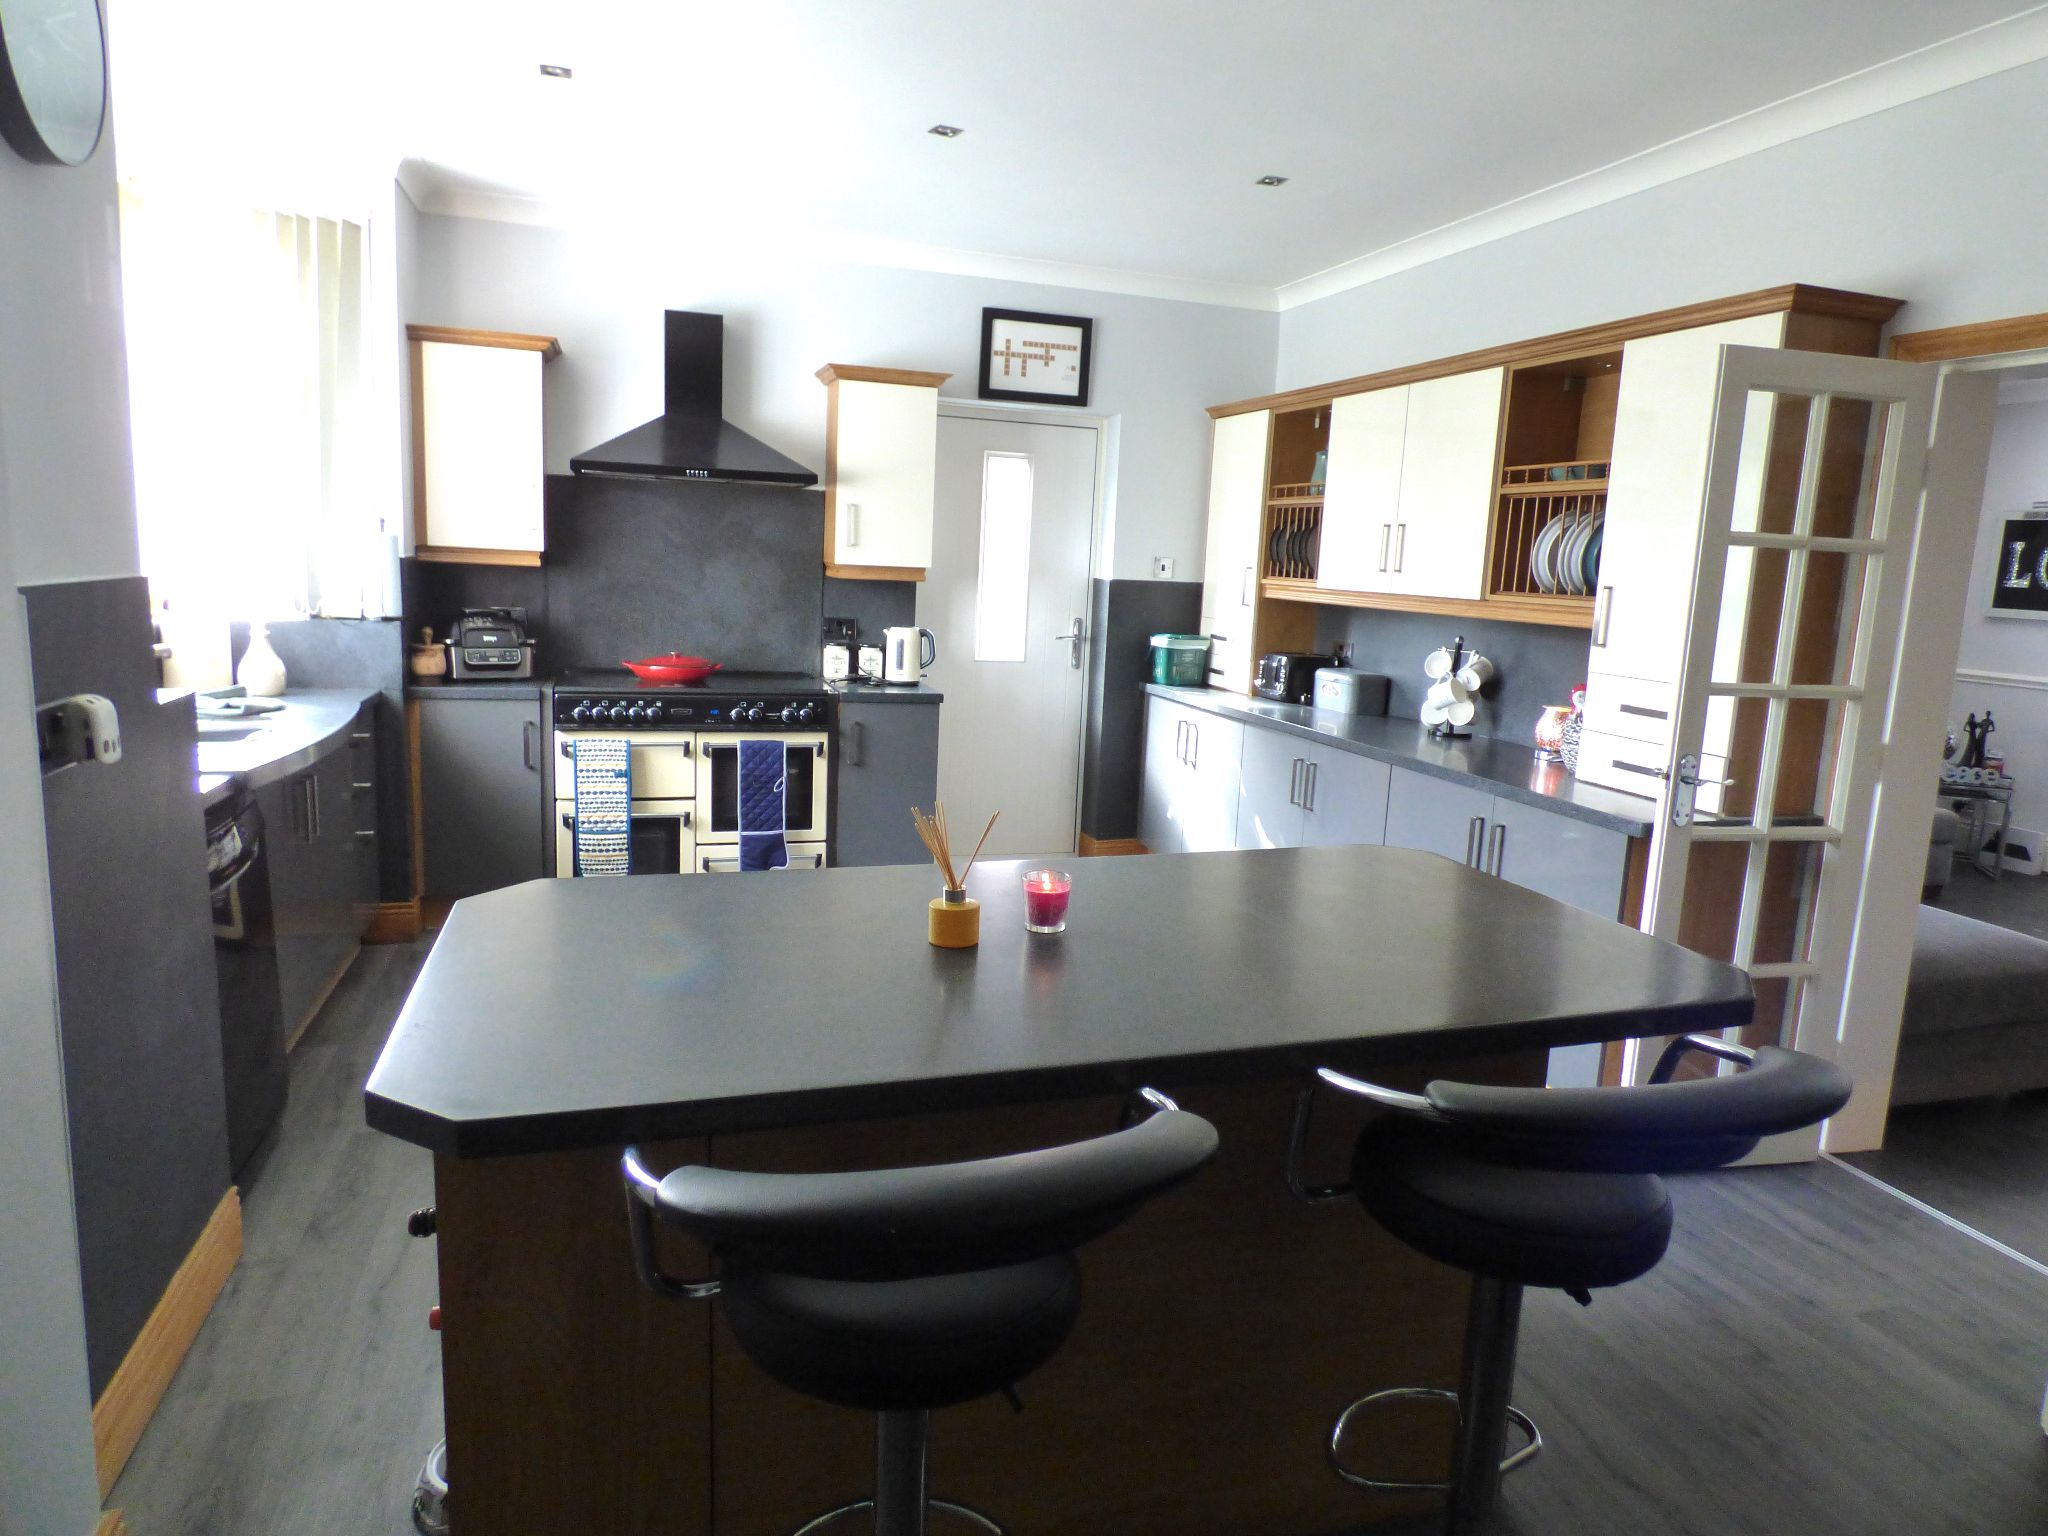 5 Bedroom Semi-detached House For Sale - Photograph 8